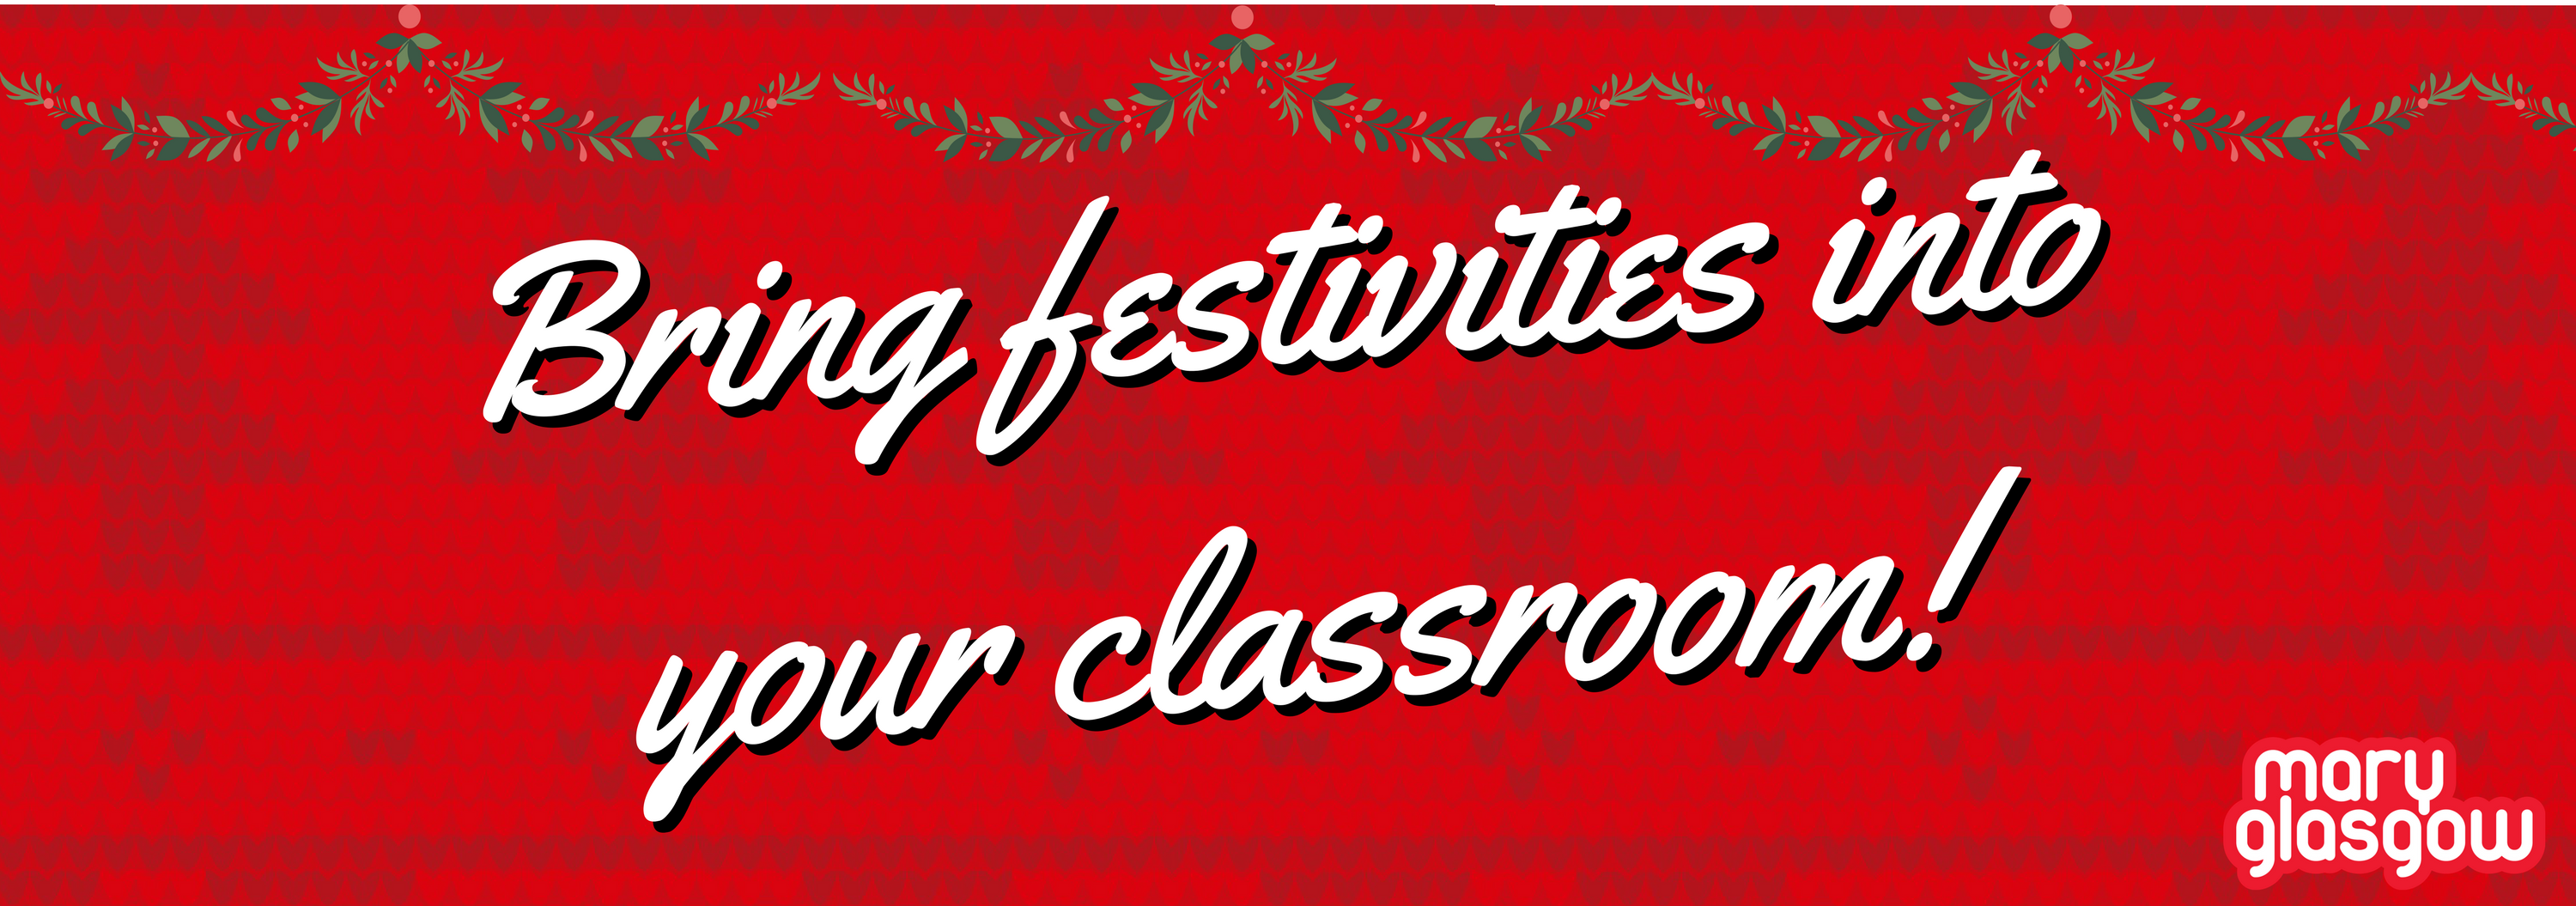 bring festivities into your classroom!.png